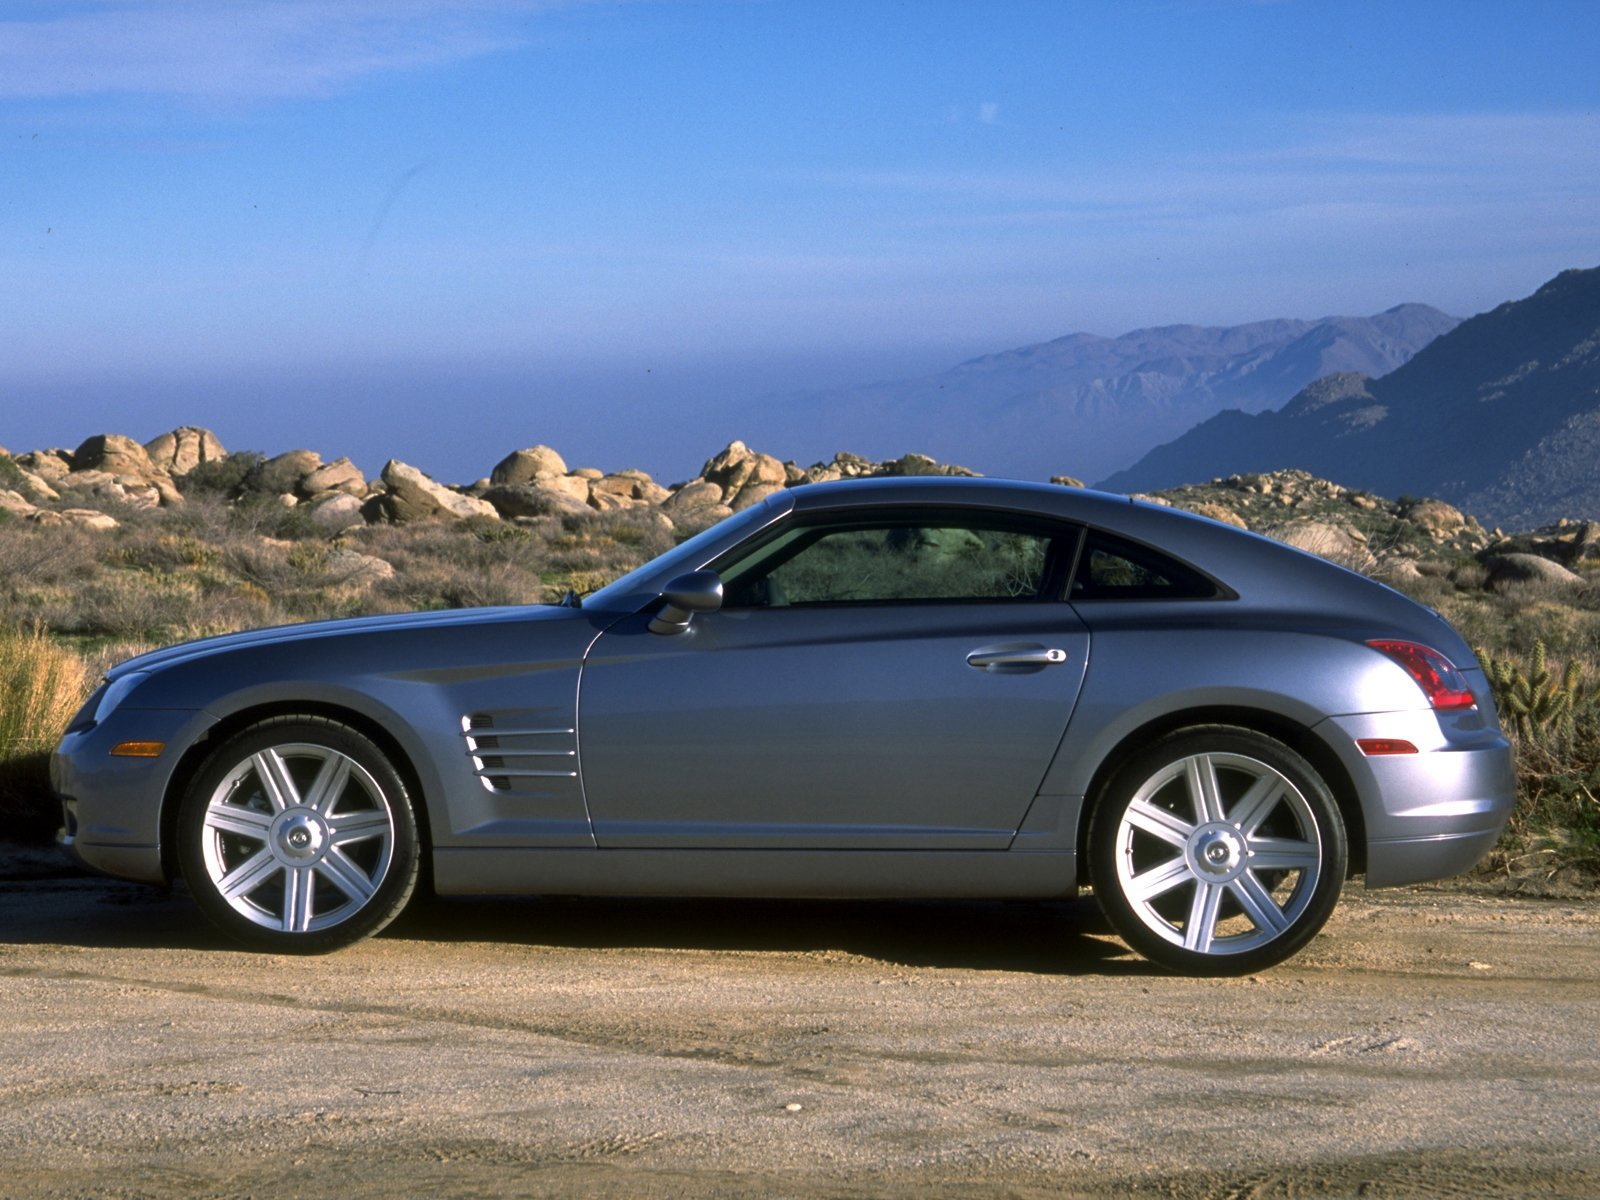 Is There A Chance For 2020 Chrysler Crossfire? - FCA ...